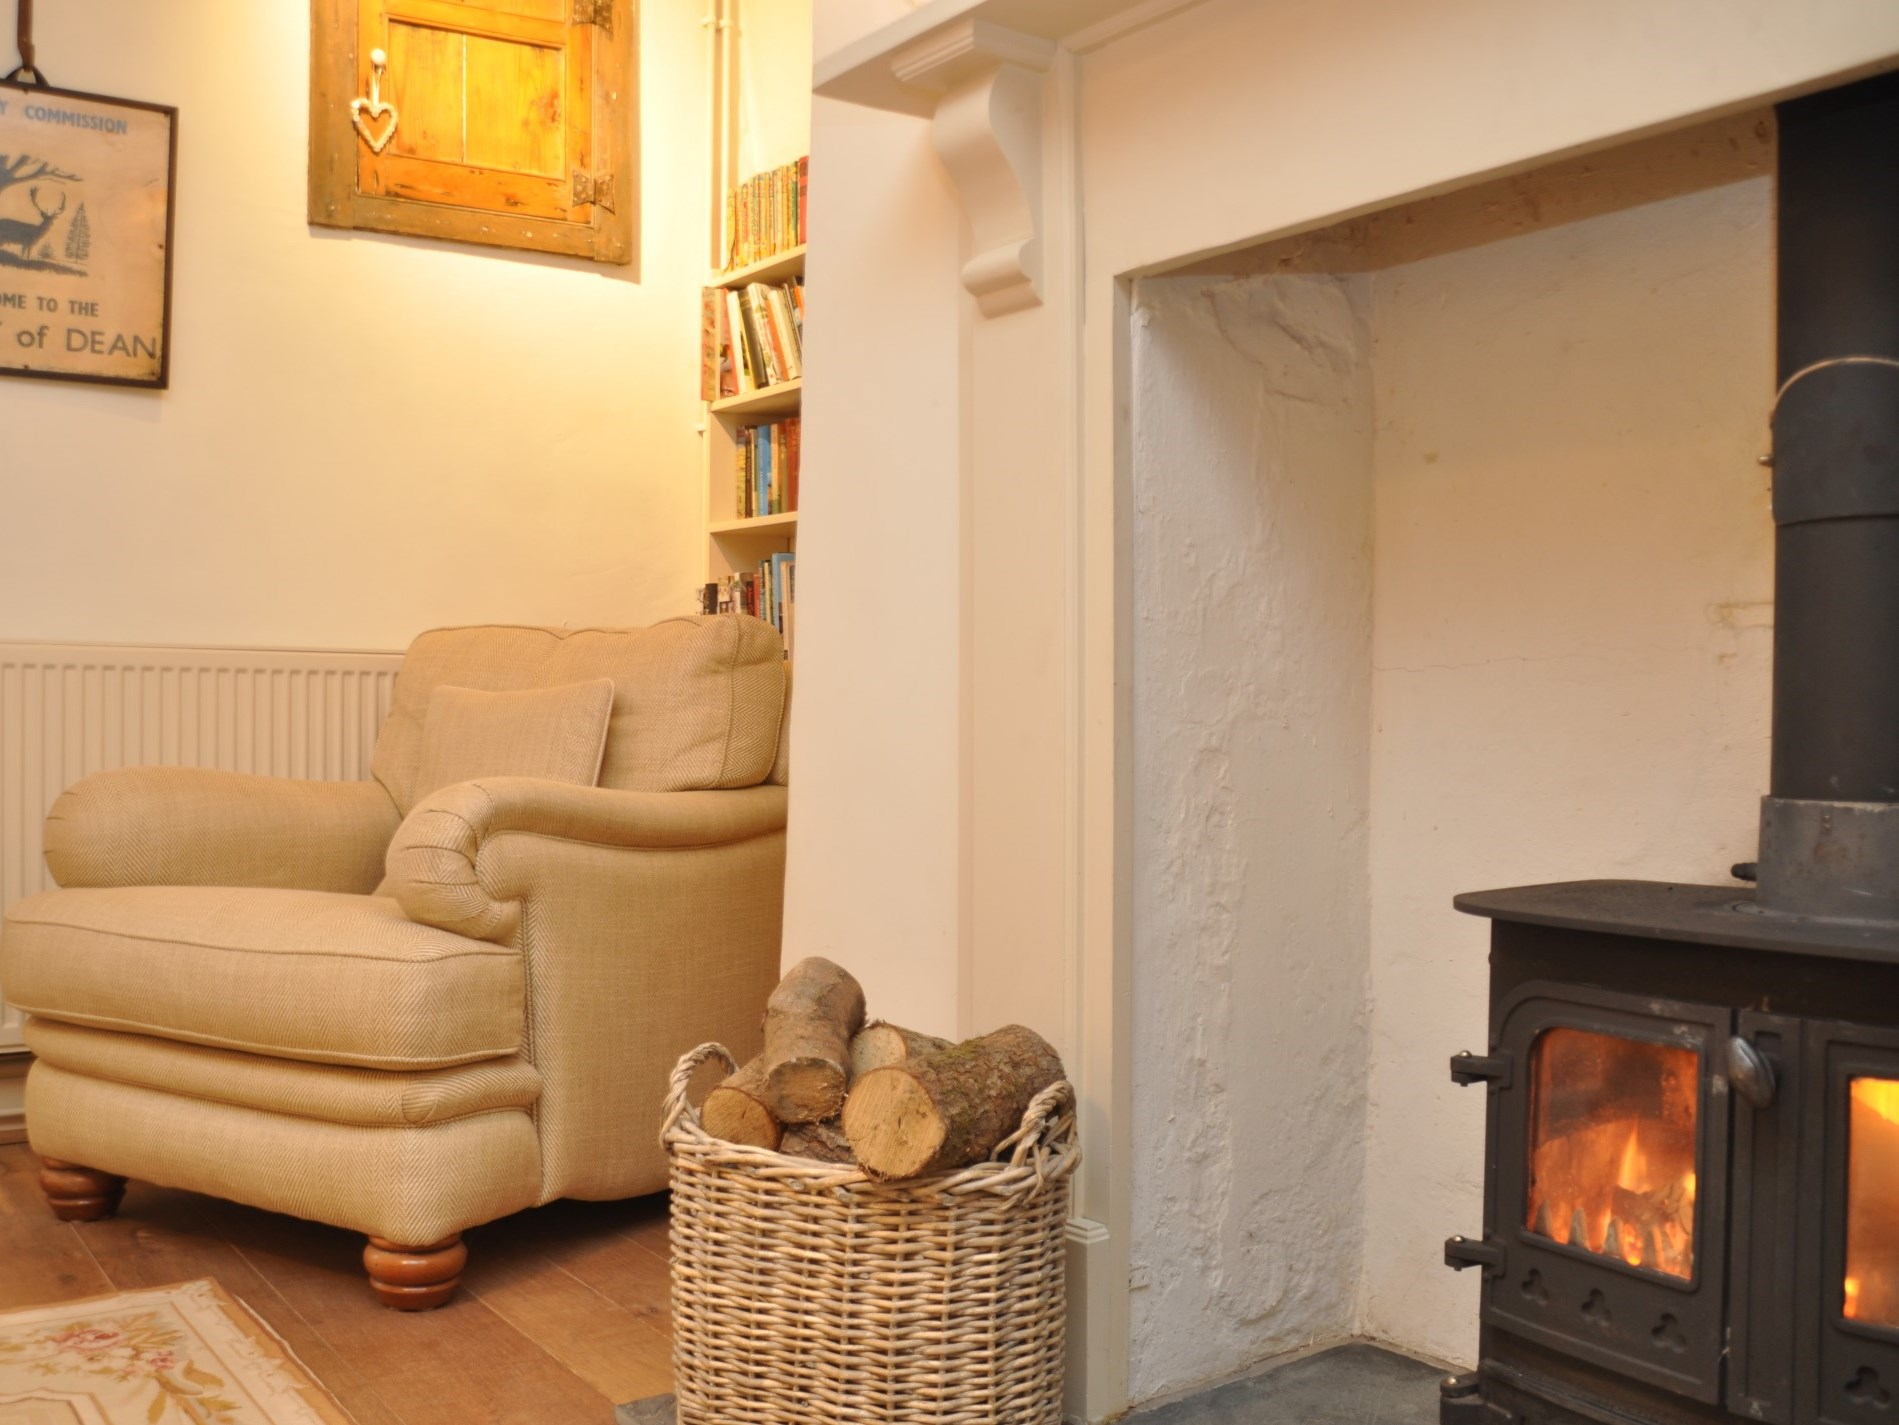 Snuggle up in front of the wood burner